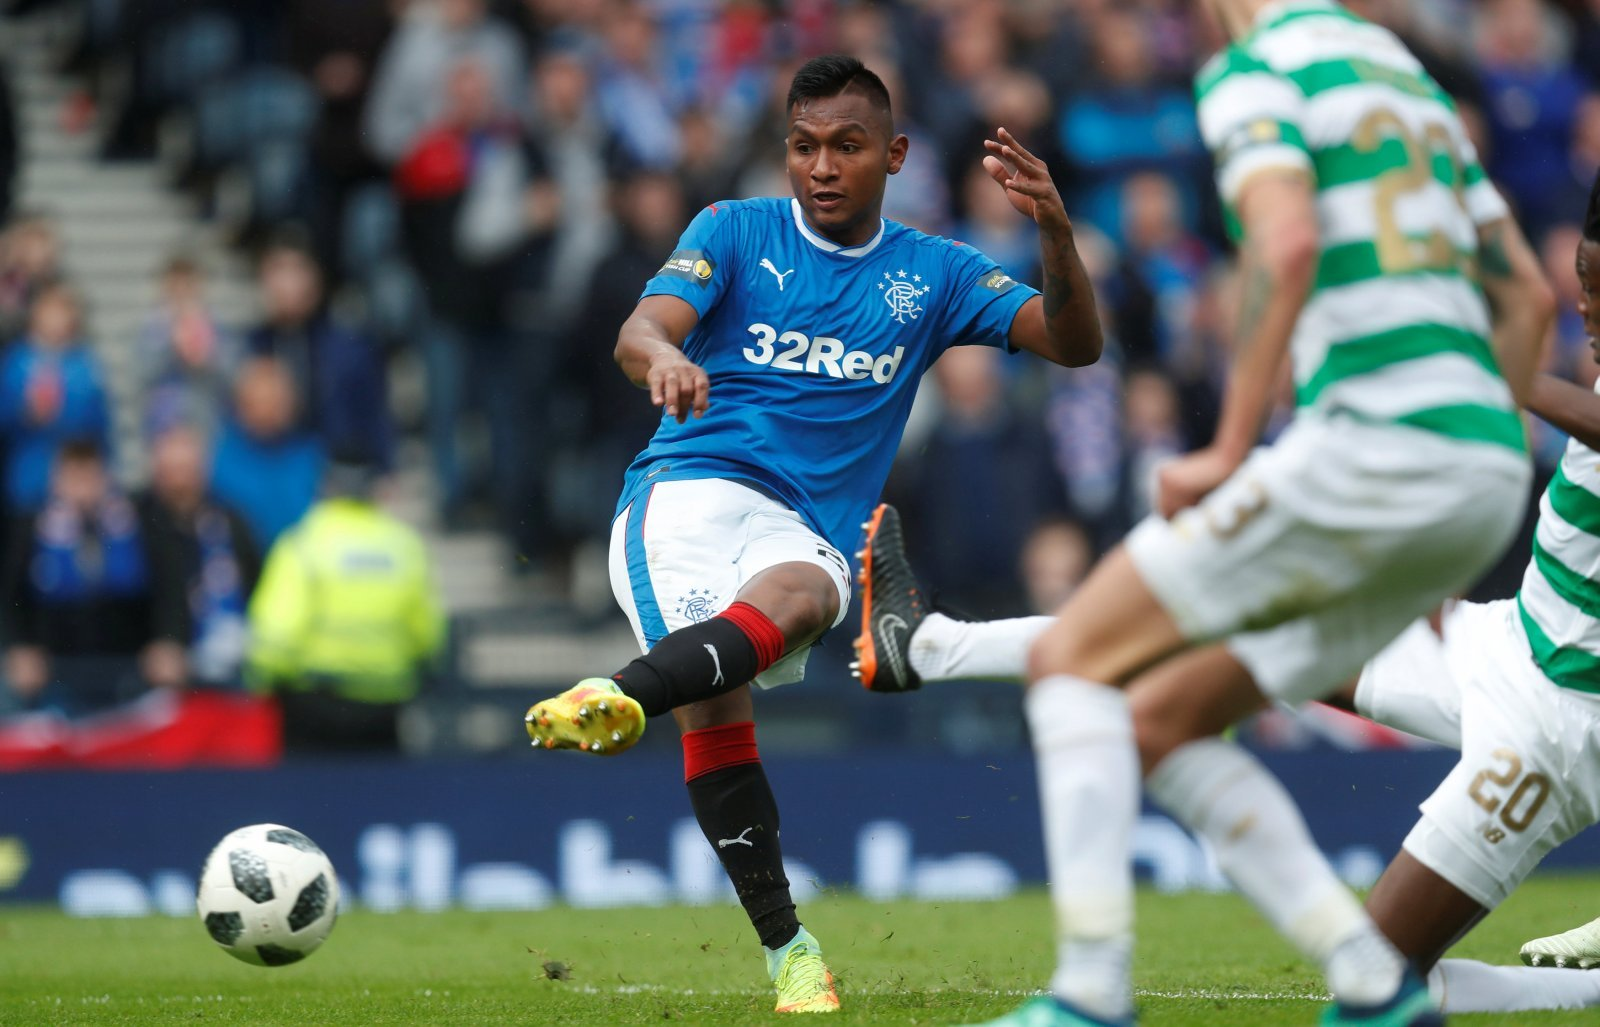 Dyanmo Kiev set to test Rangers over Alfredo Morelos